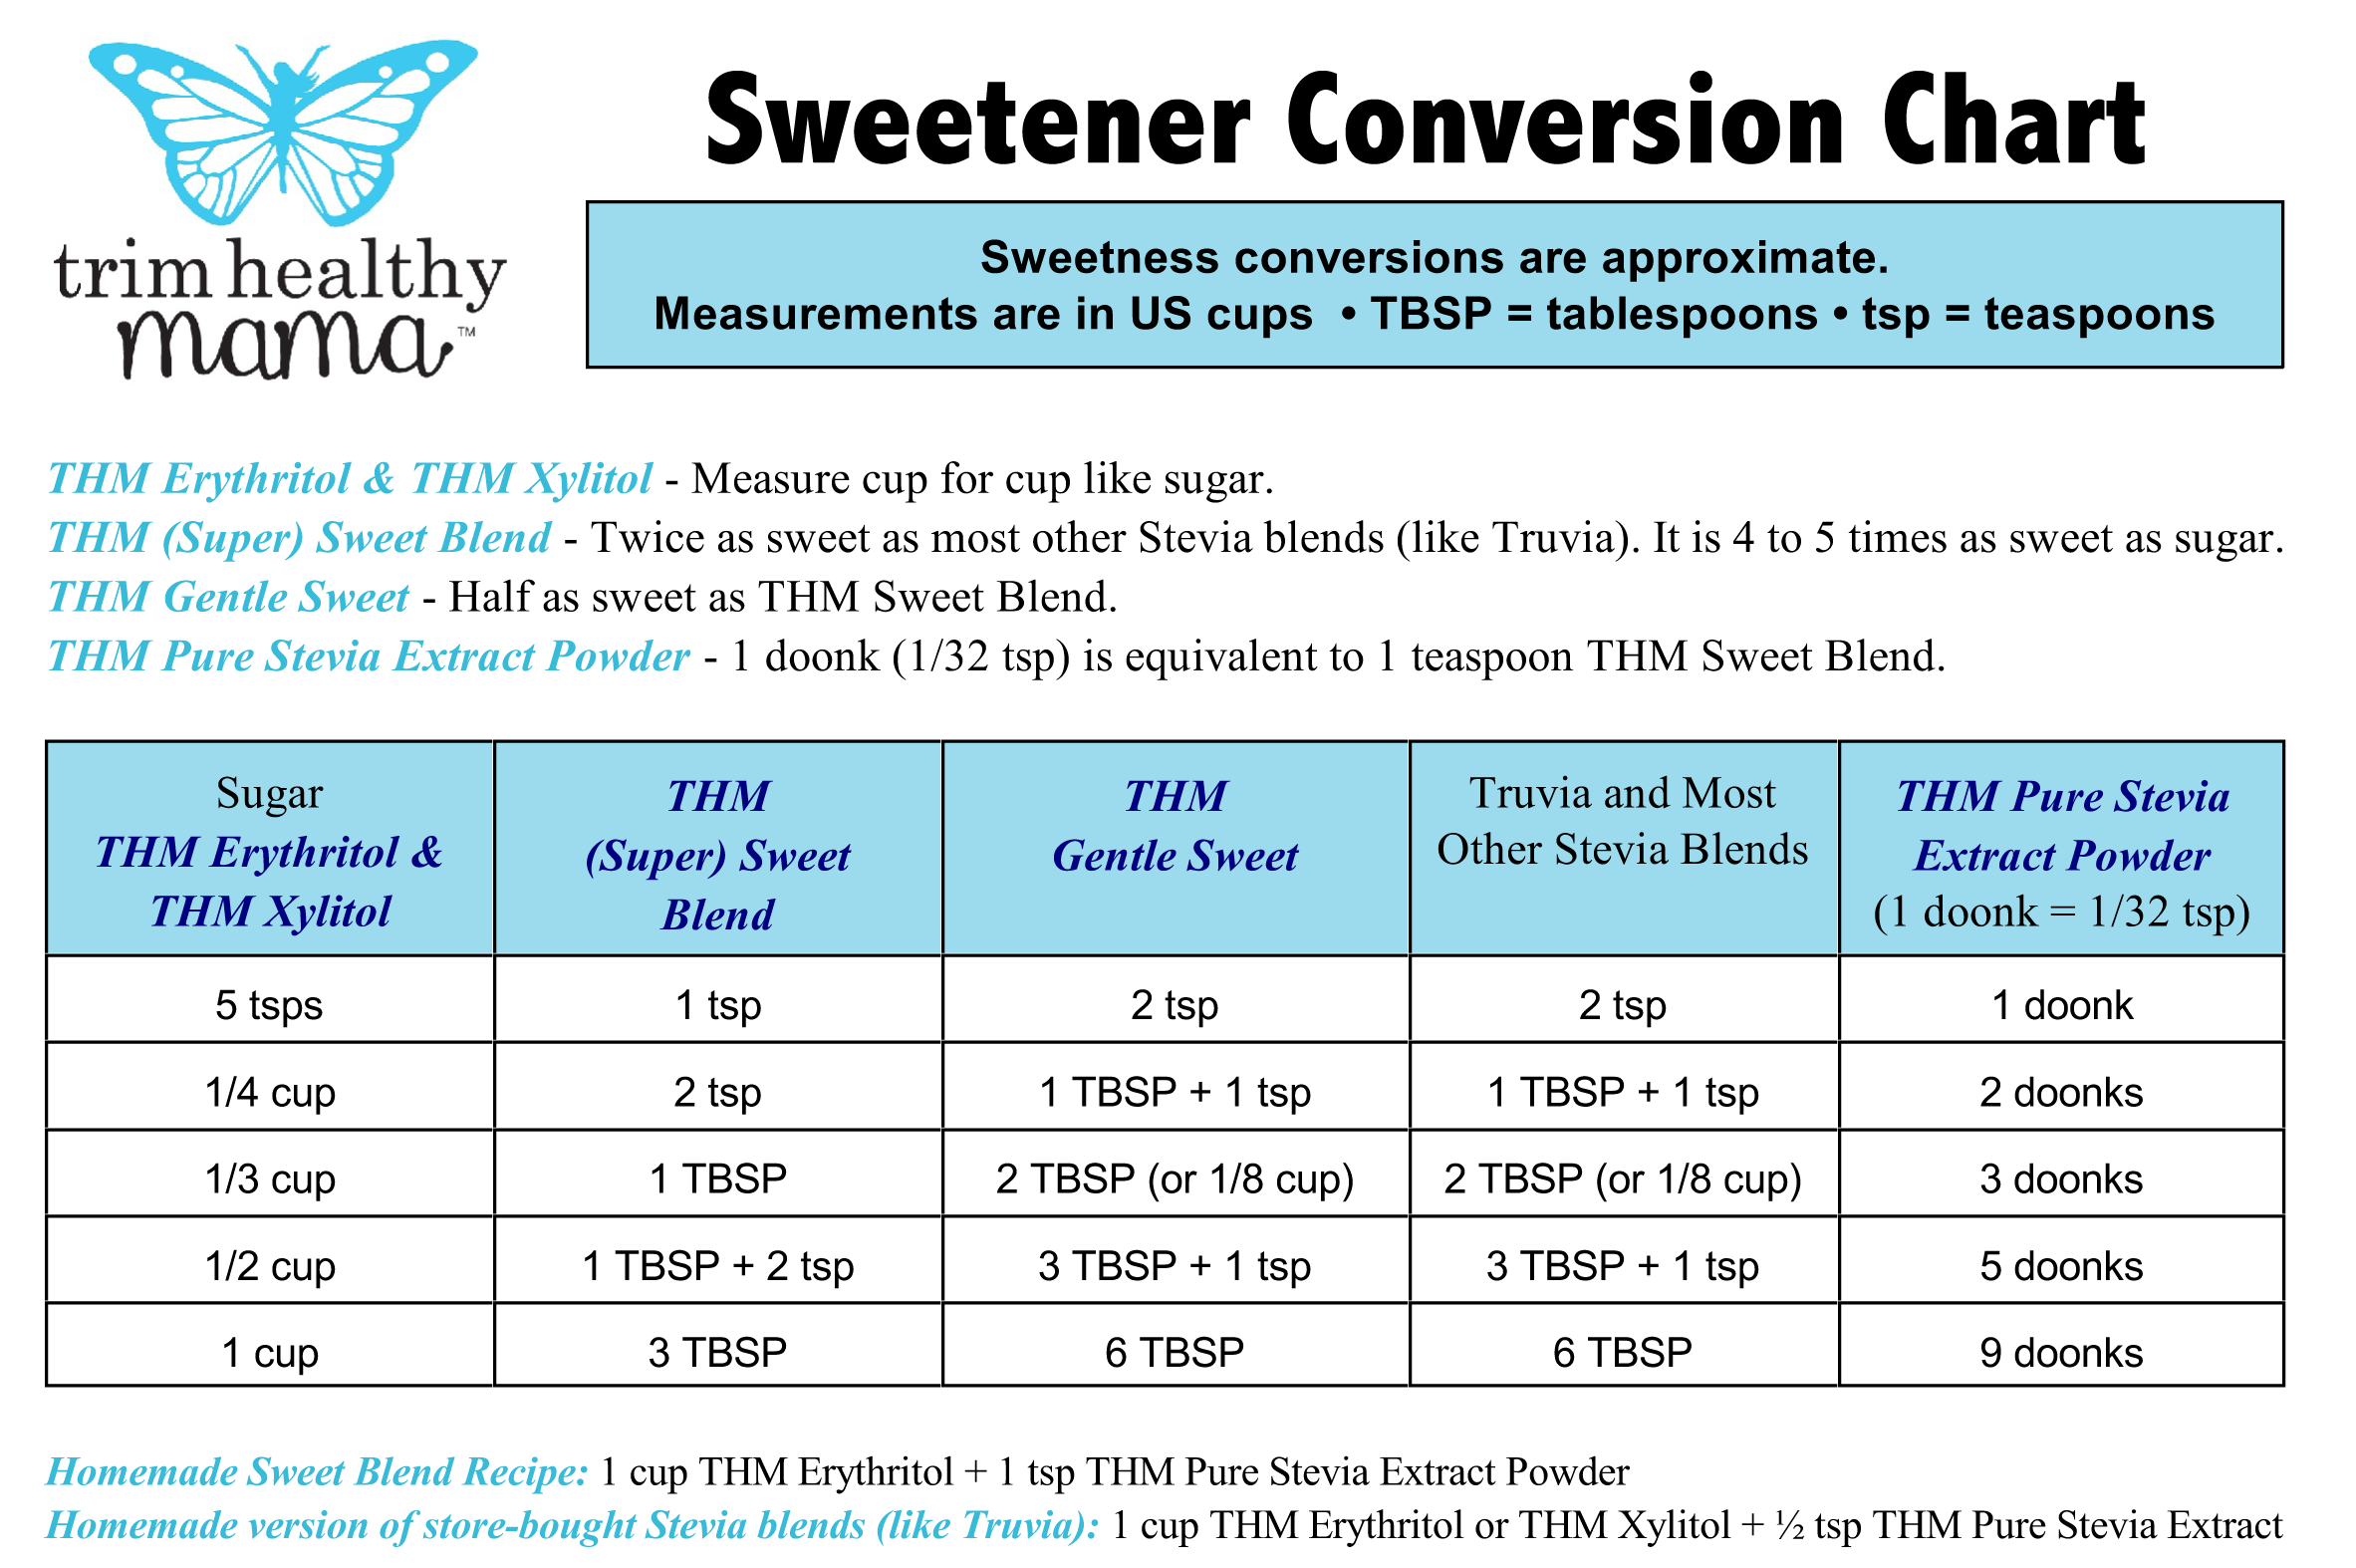 Sweetener Conversion Chart Included Gentle Sweet